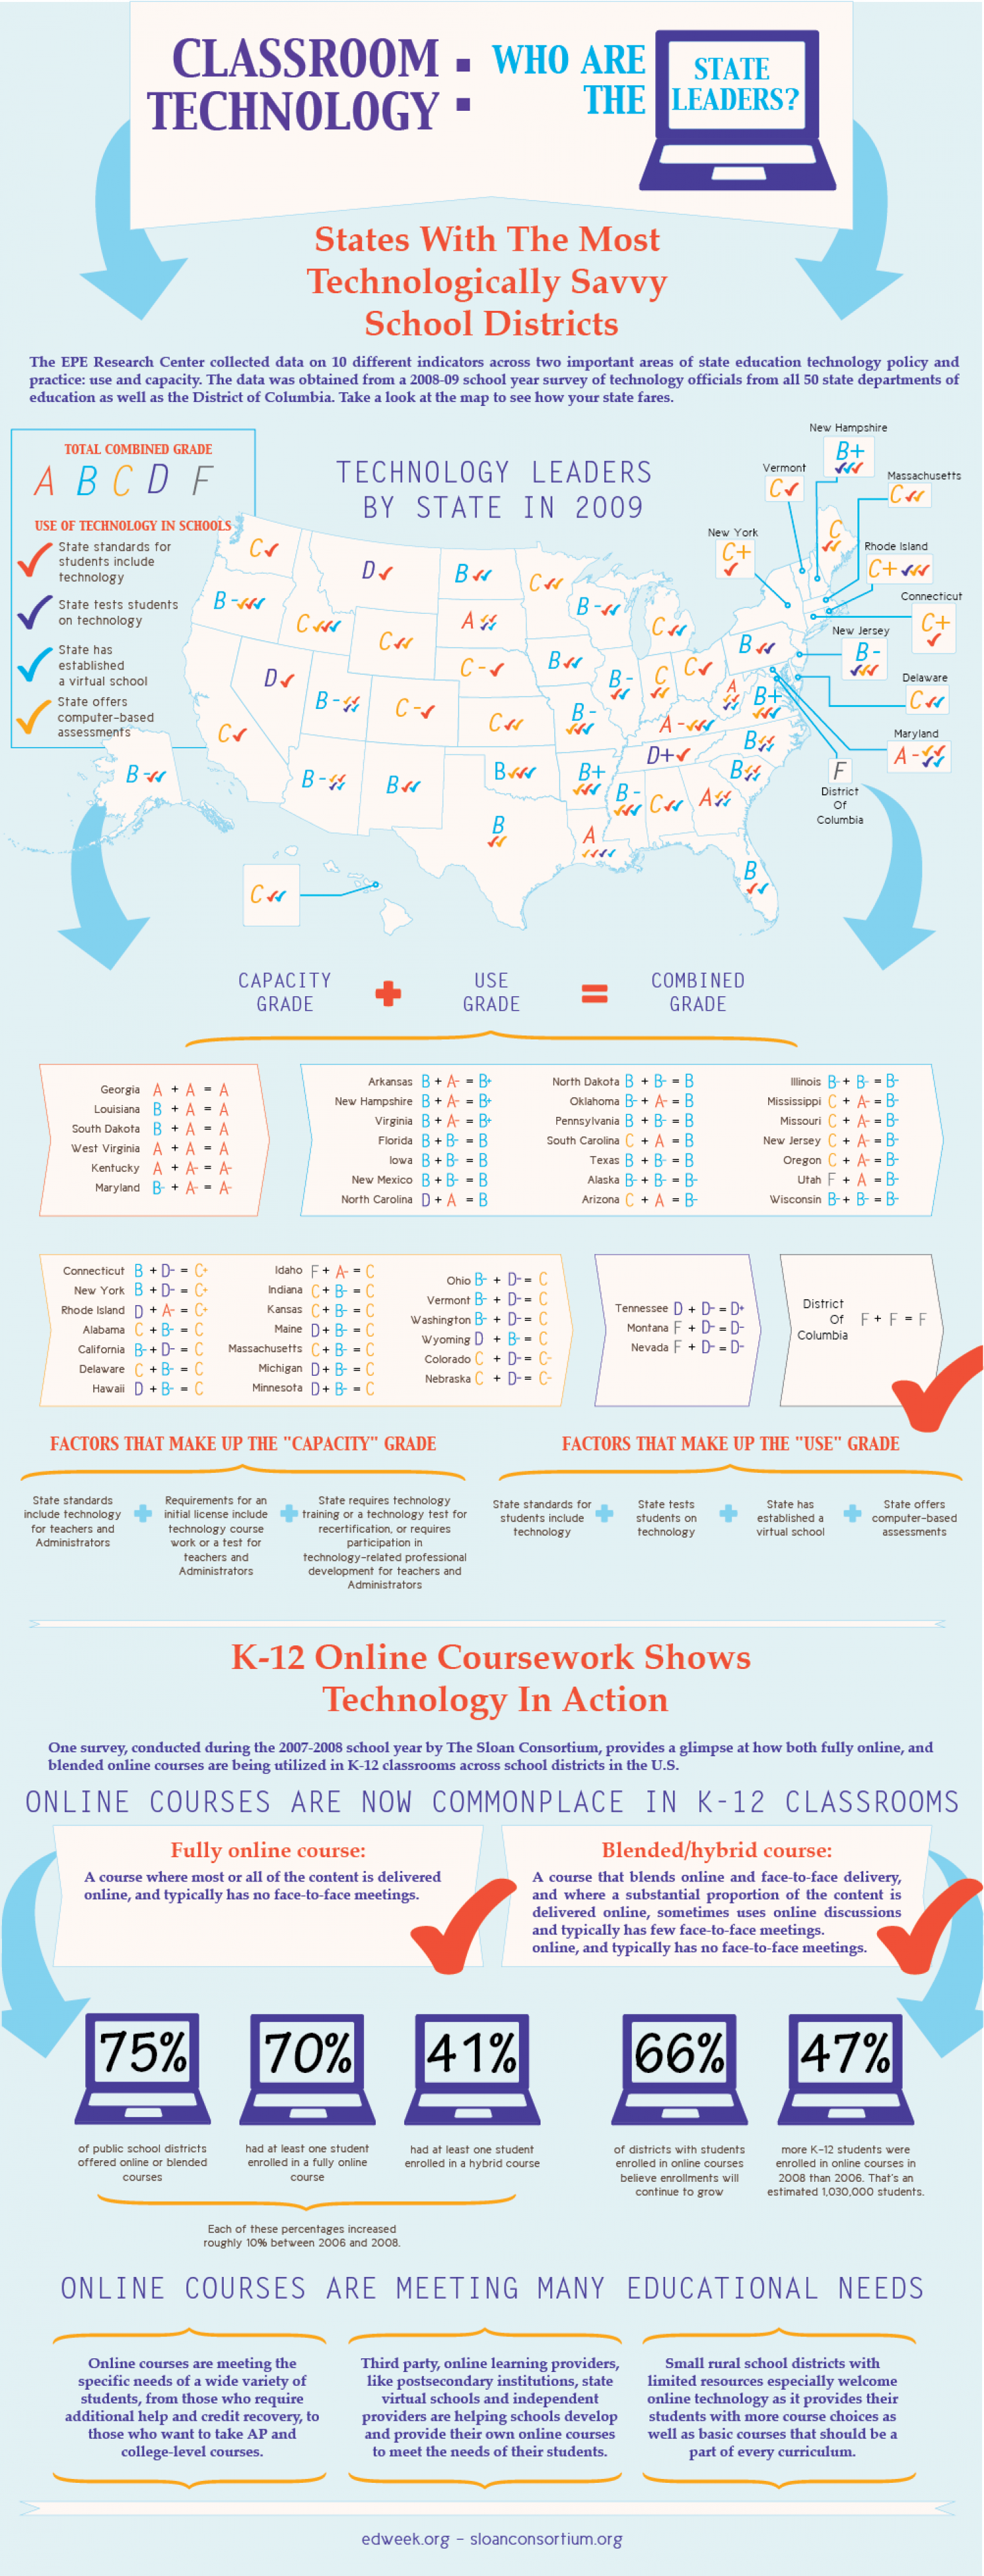 Classroom Technology: Who are the State Leaders? Infographic